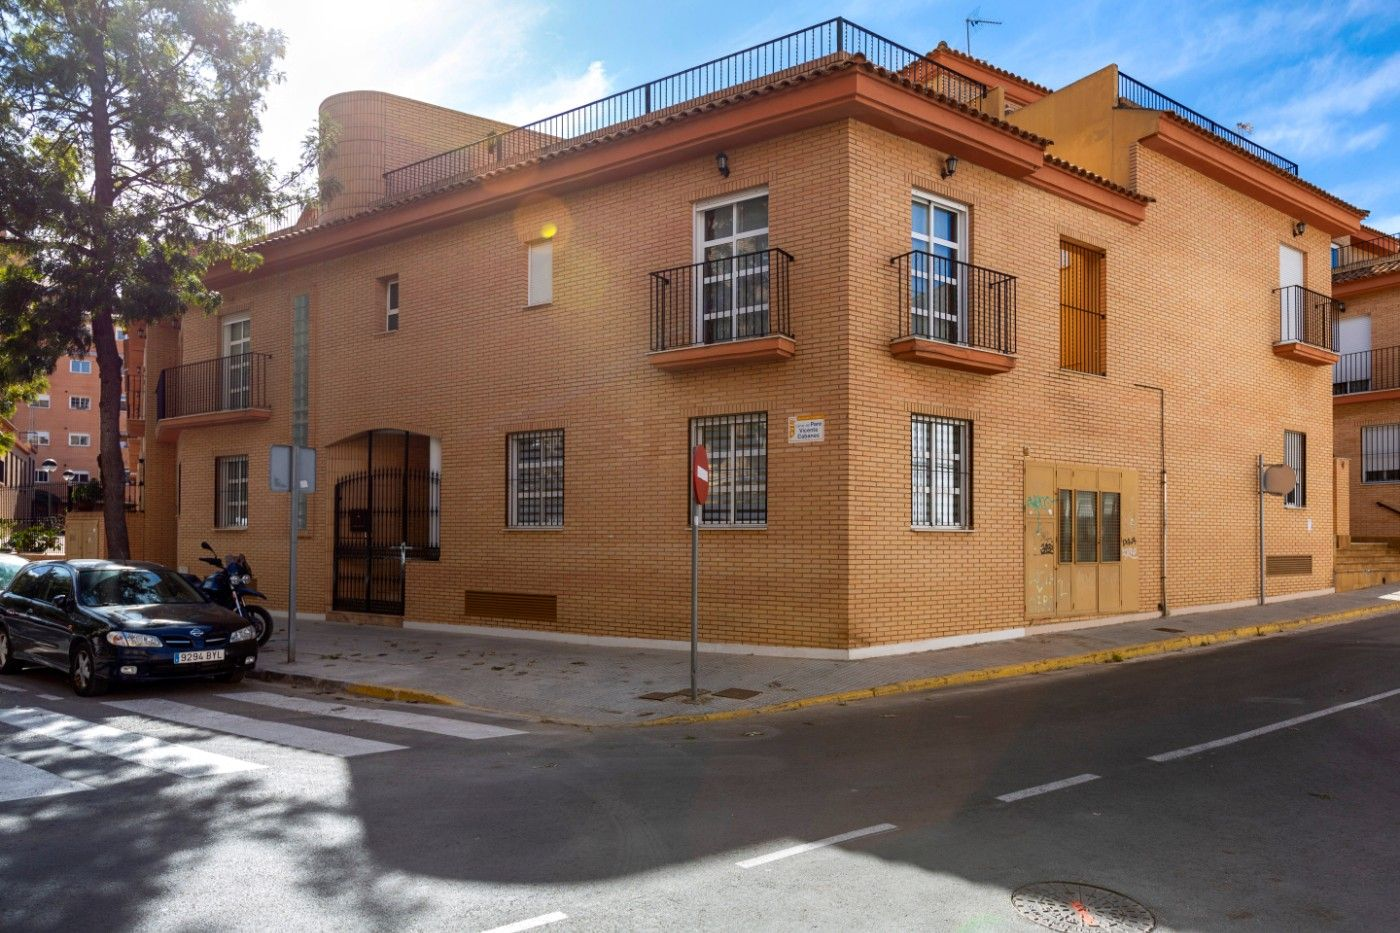 Semi detached house in Calle padre vicente cabanes, 2. Adosado esquinero parque trenor